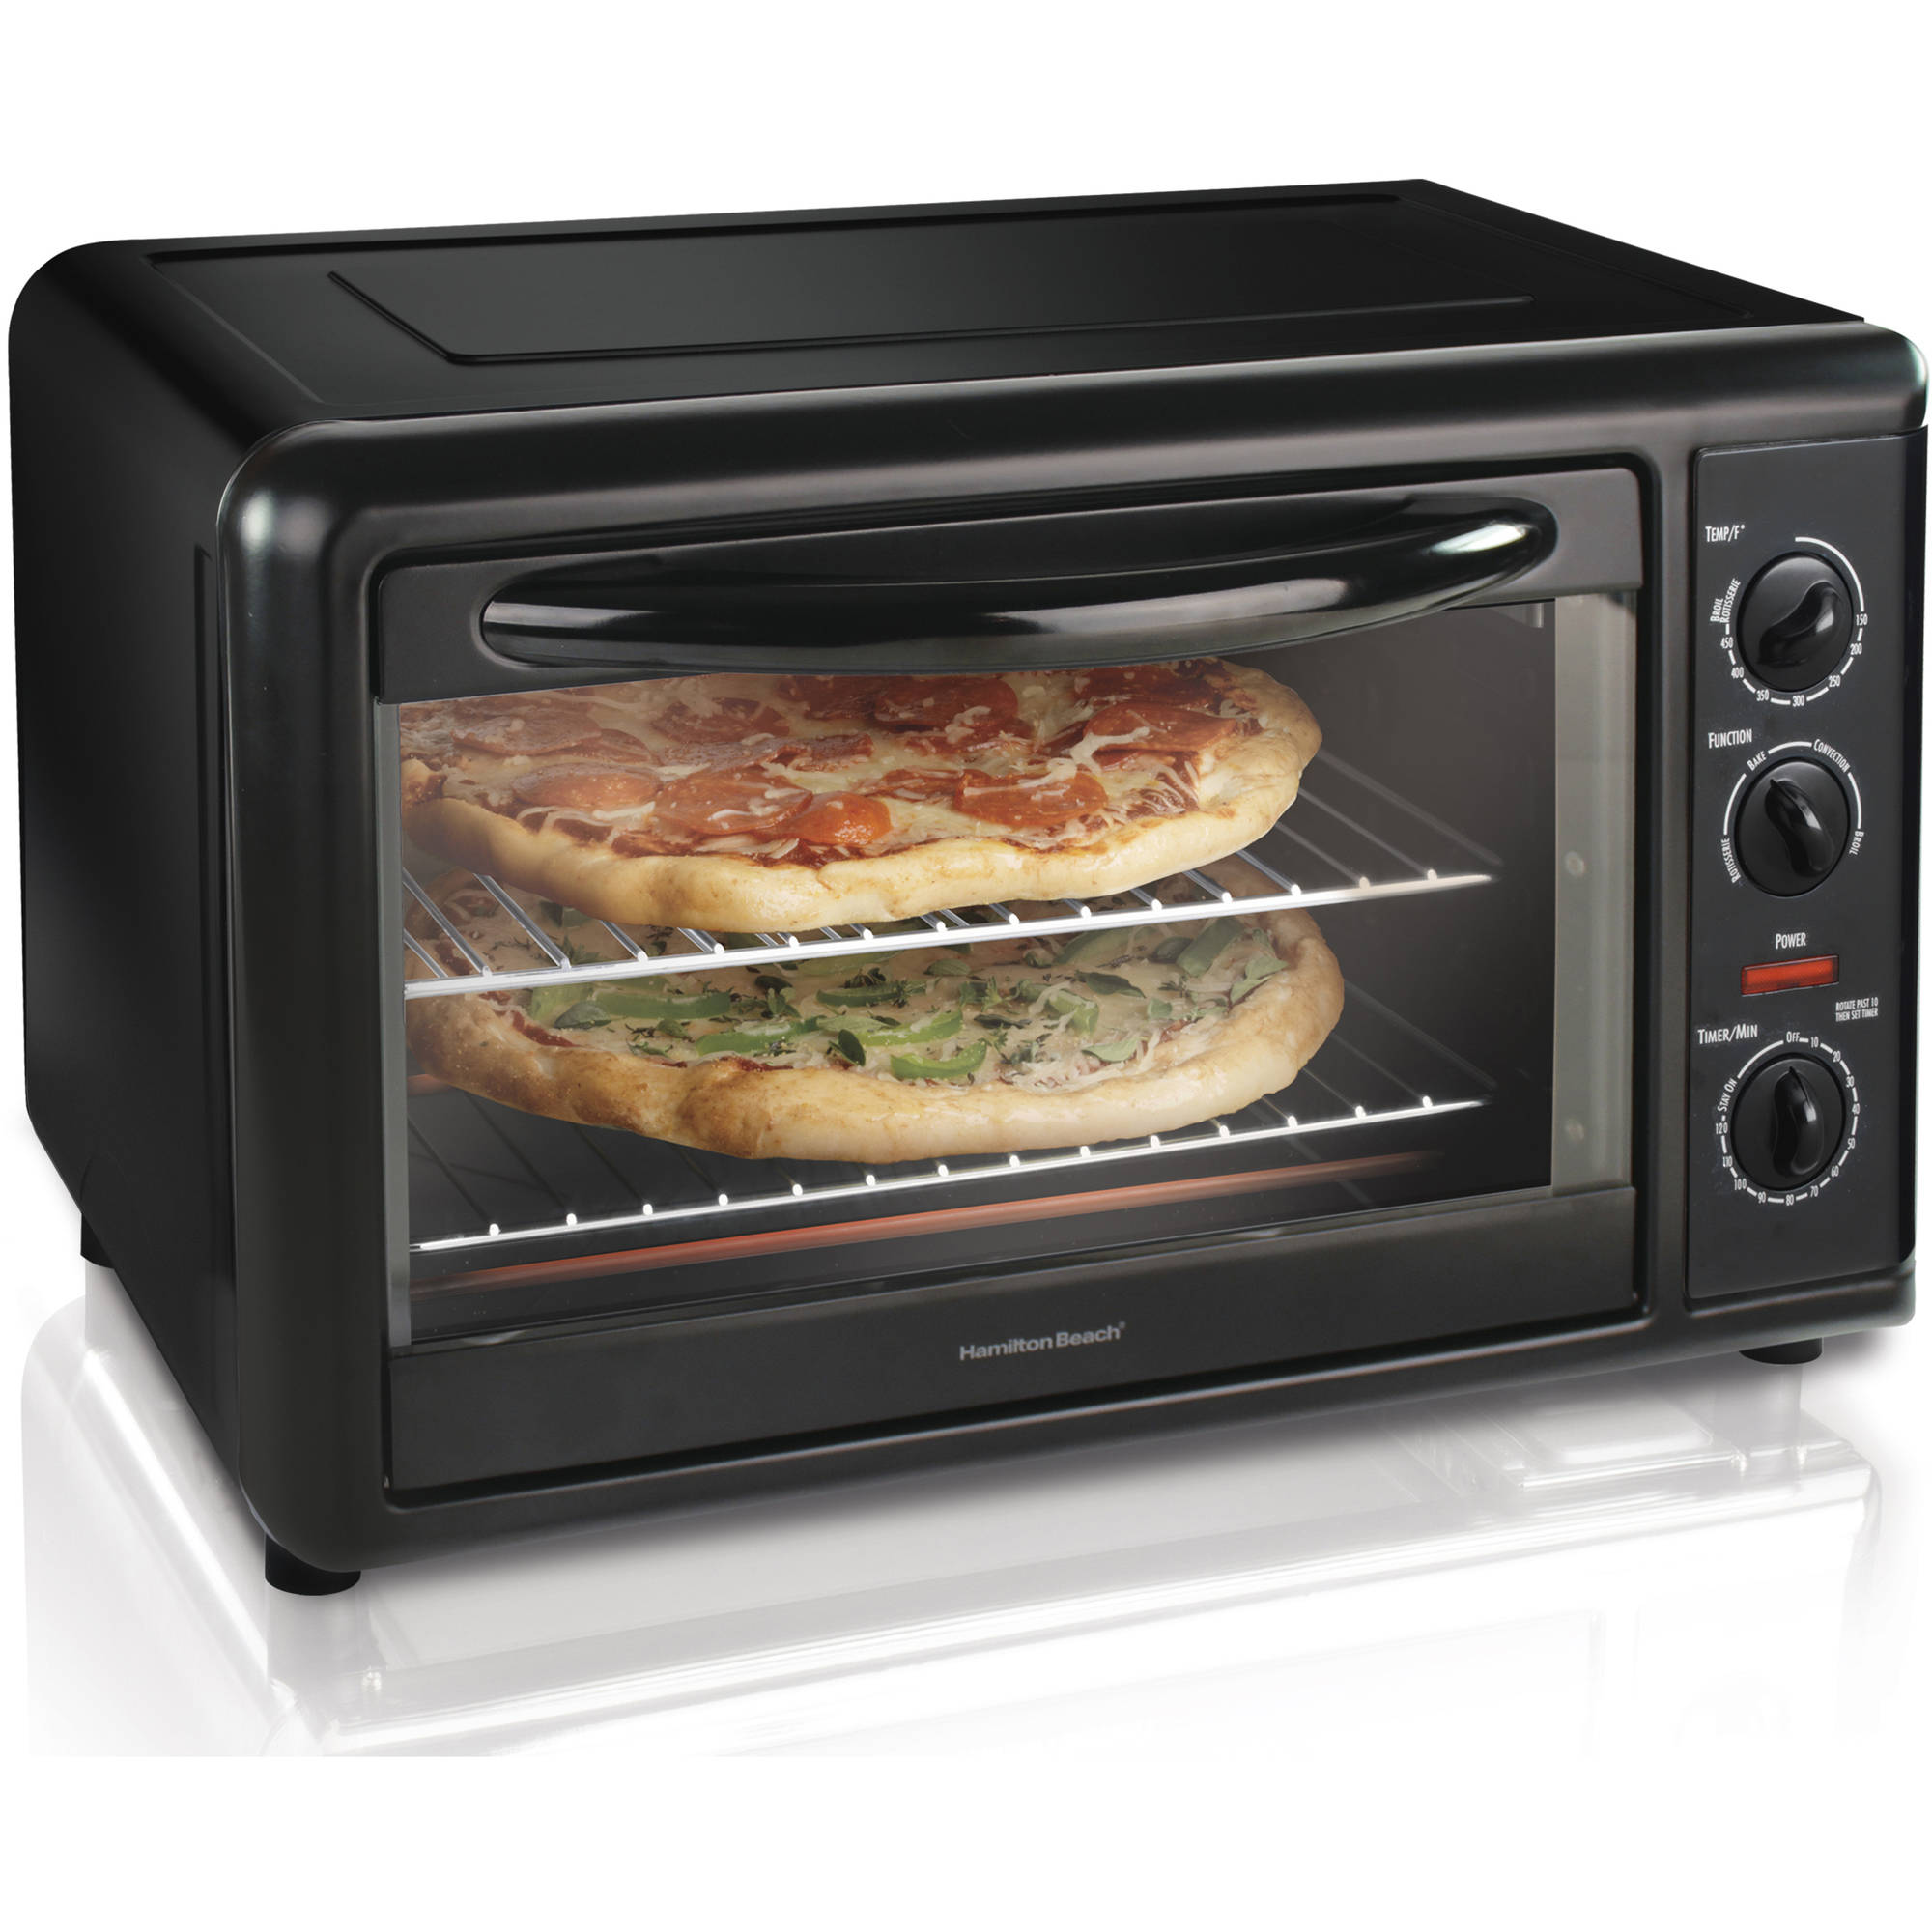 Refurbished Hamilton Beach Countertop Oven with Convection and Rotisserie | Model# R1304